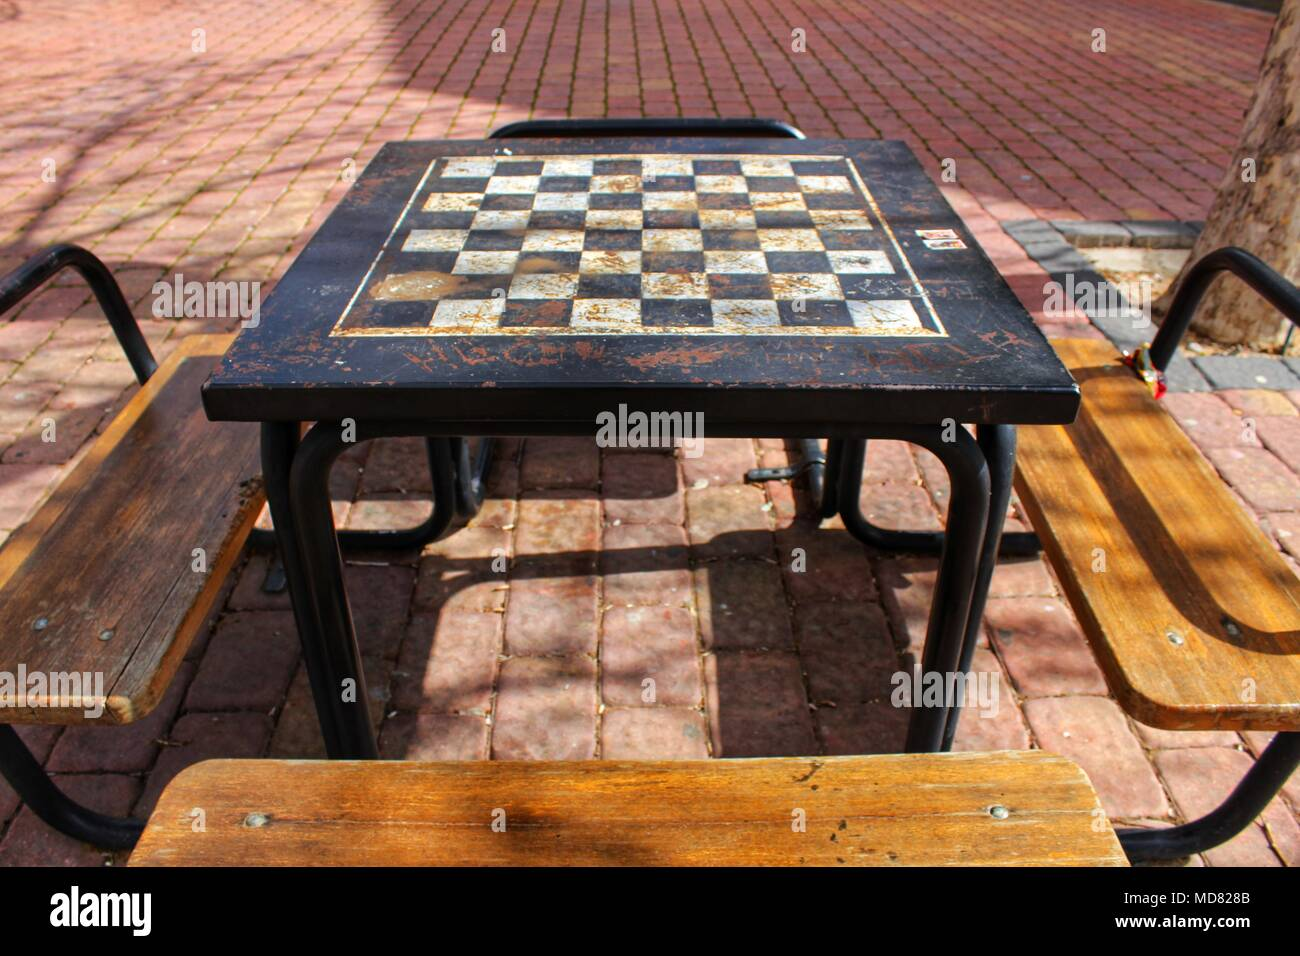 Board Games On The Street On Wooden Table And Chairs Stock Photo ...